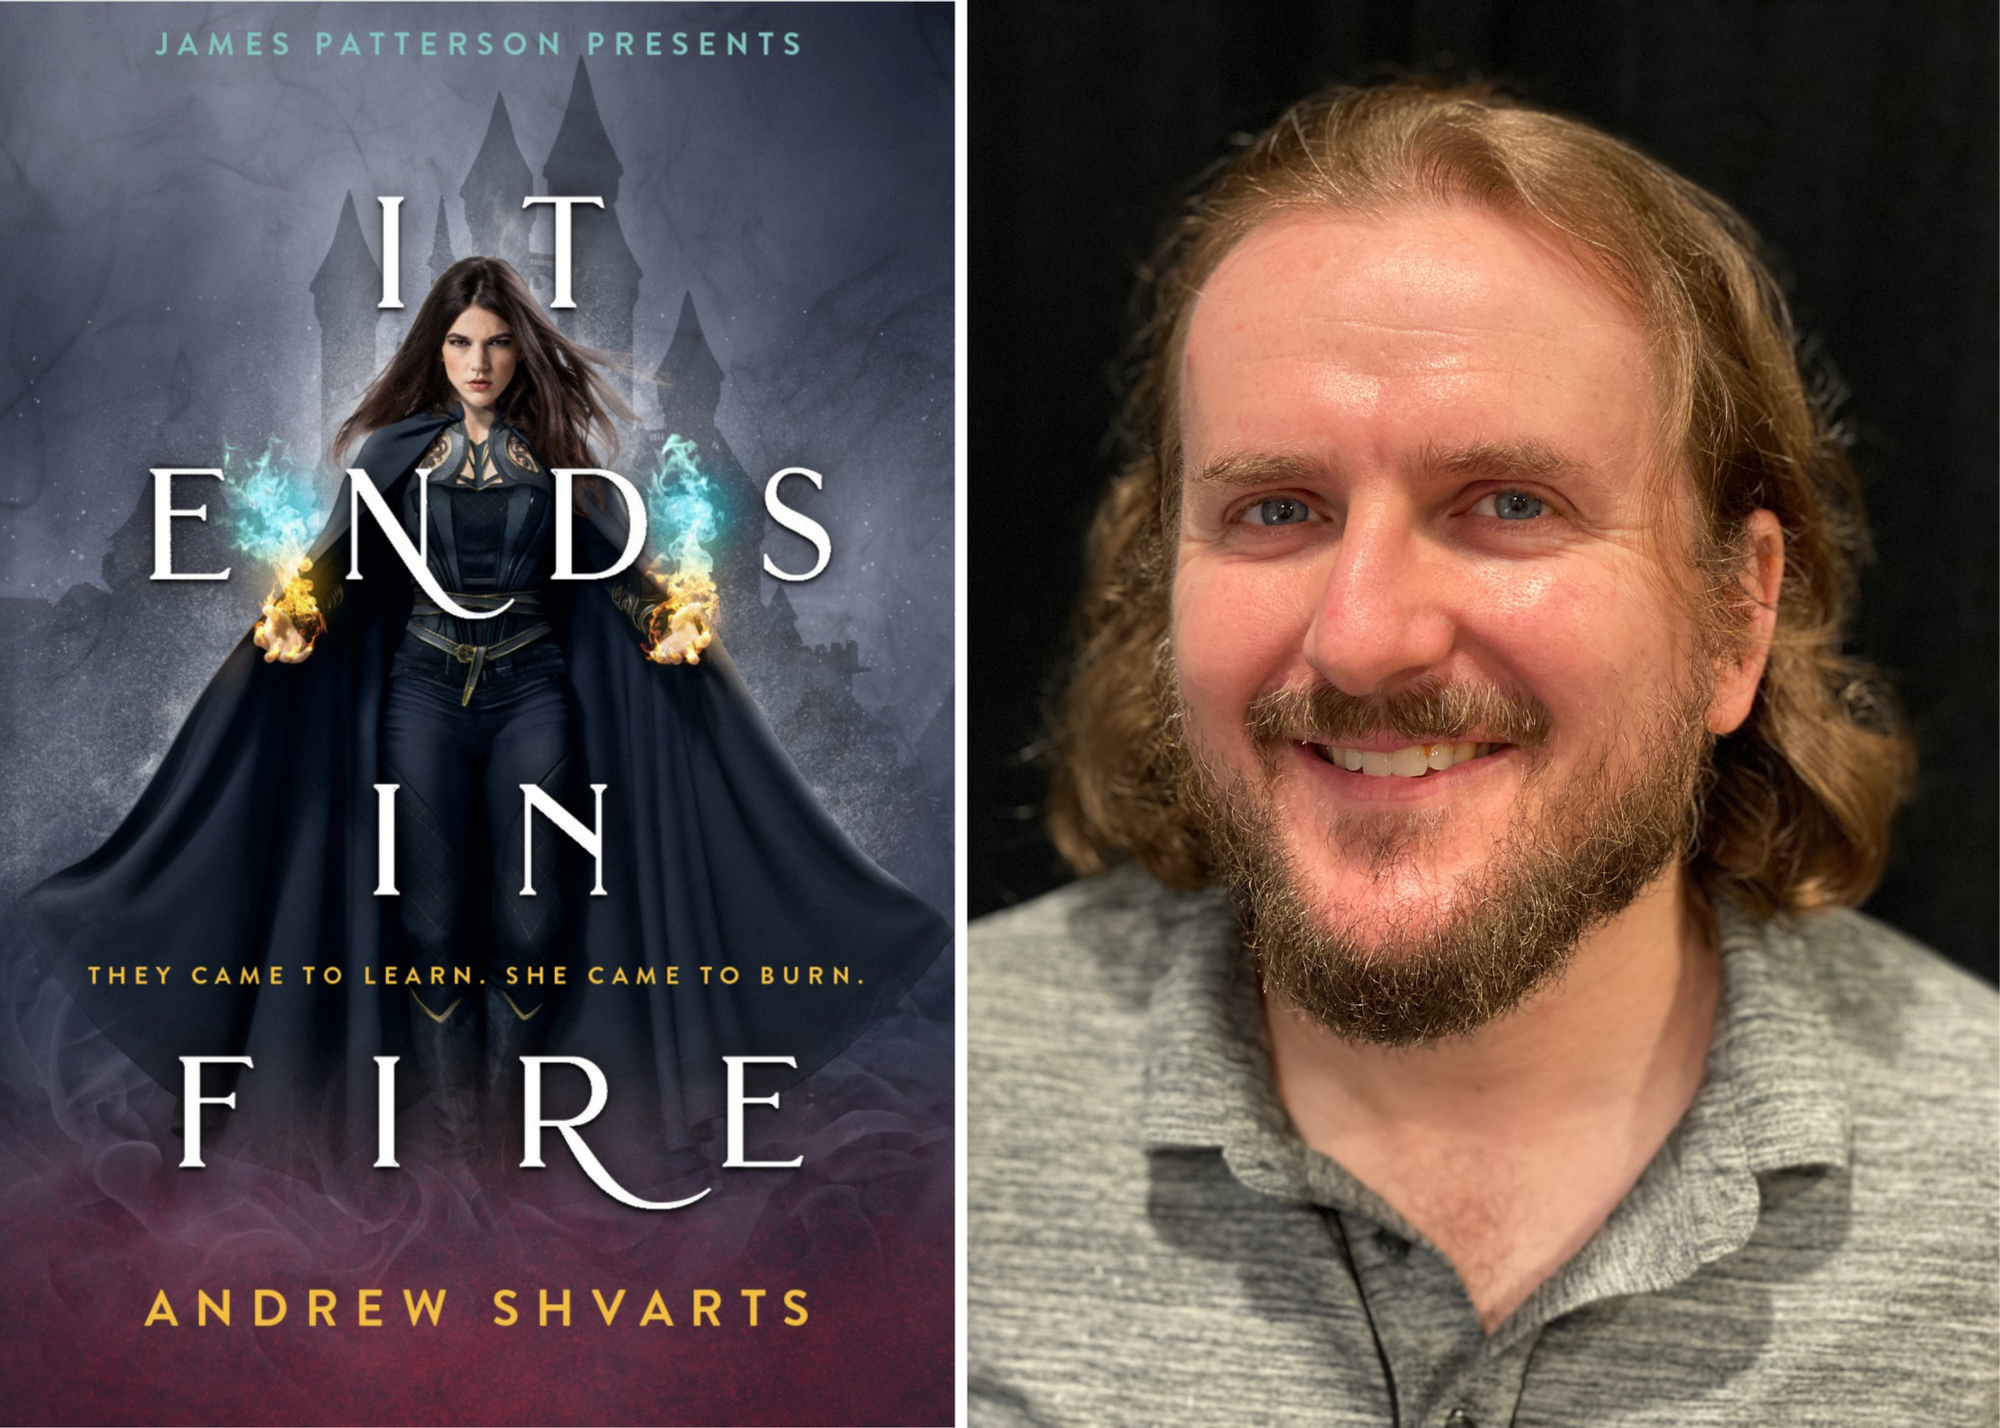 EXCLUSIVE INTERVIEW: Andrew Shvarts Talks 'It Ends in Fire' and Having a Queer Female Protagonist